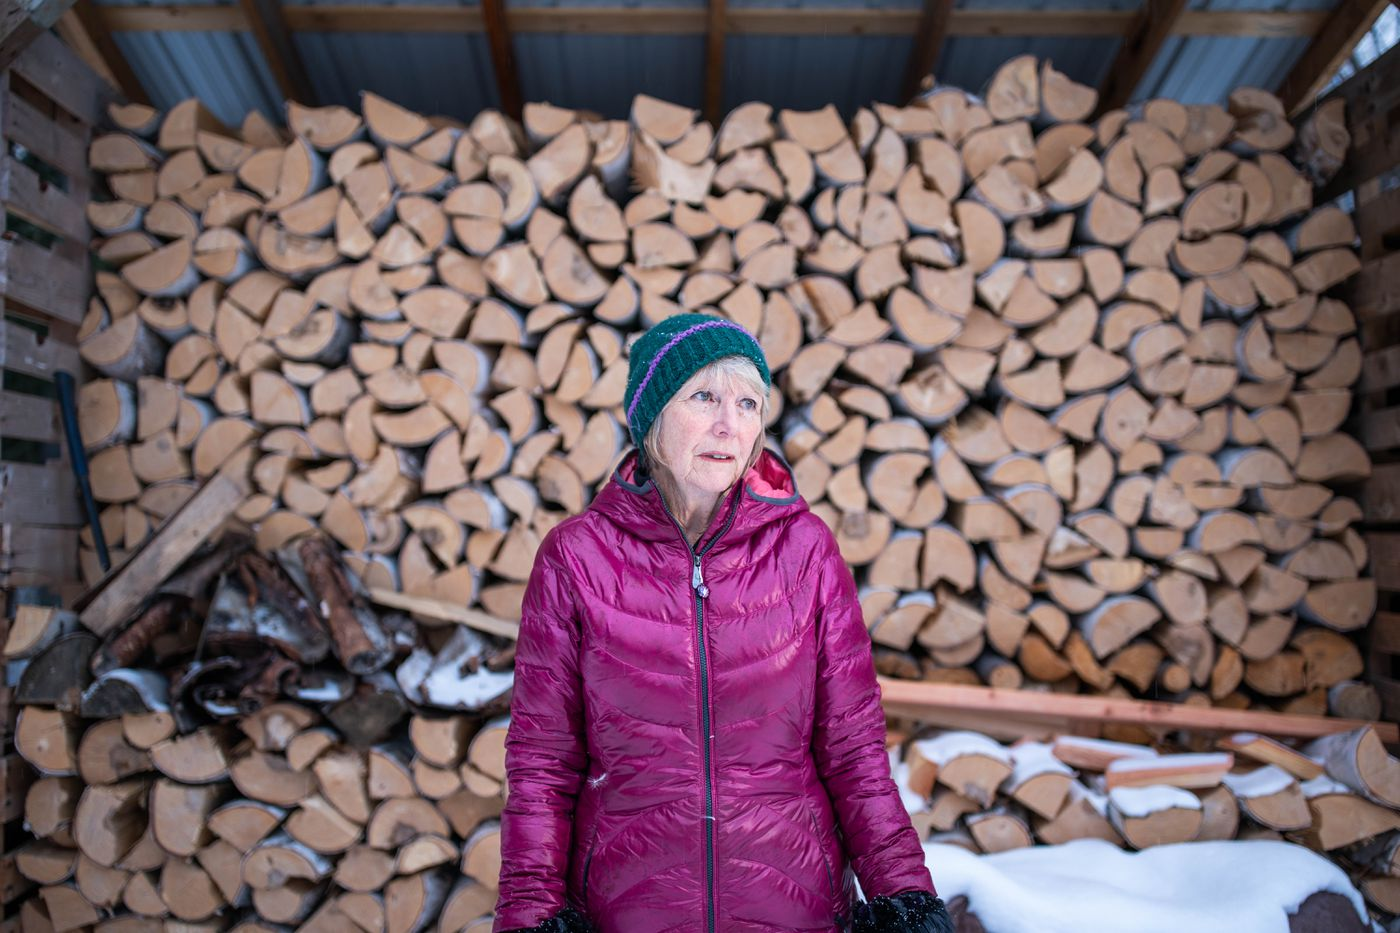 Sue Royston at her home in Fairbanks. She lives in a log cabin, which was her childhood dream. Her daughter and grandson come over often, and before winter each year they help her stock up on firewood. (Loren Holmes/Anchorage Daily News)